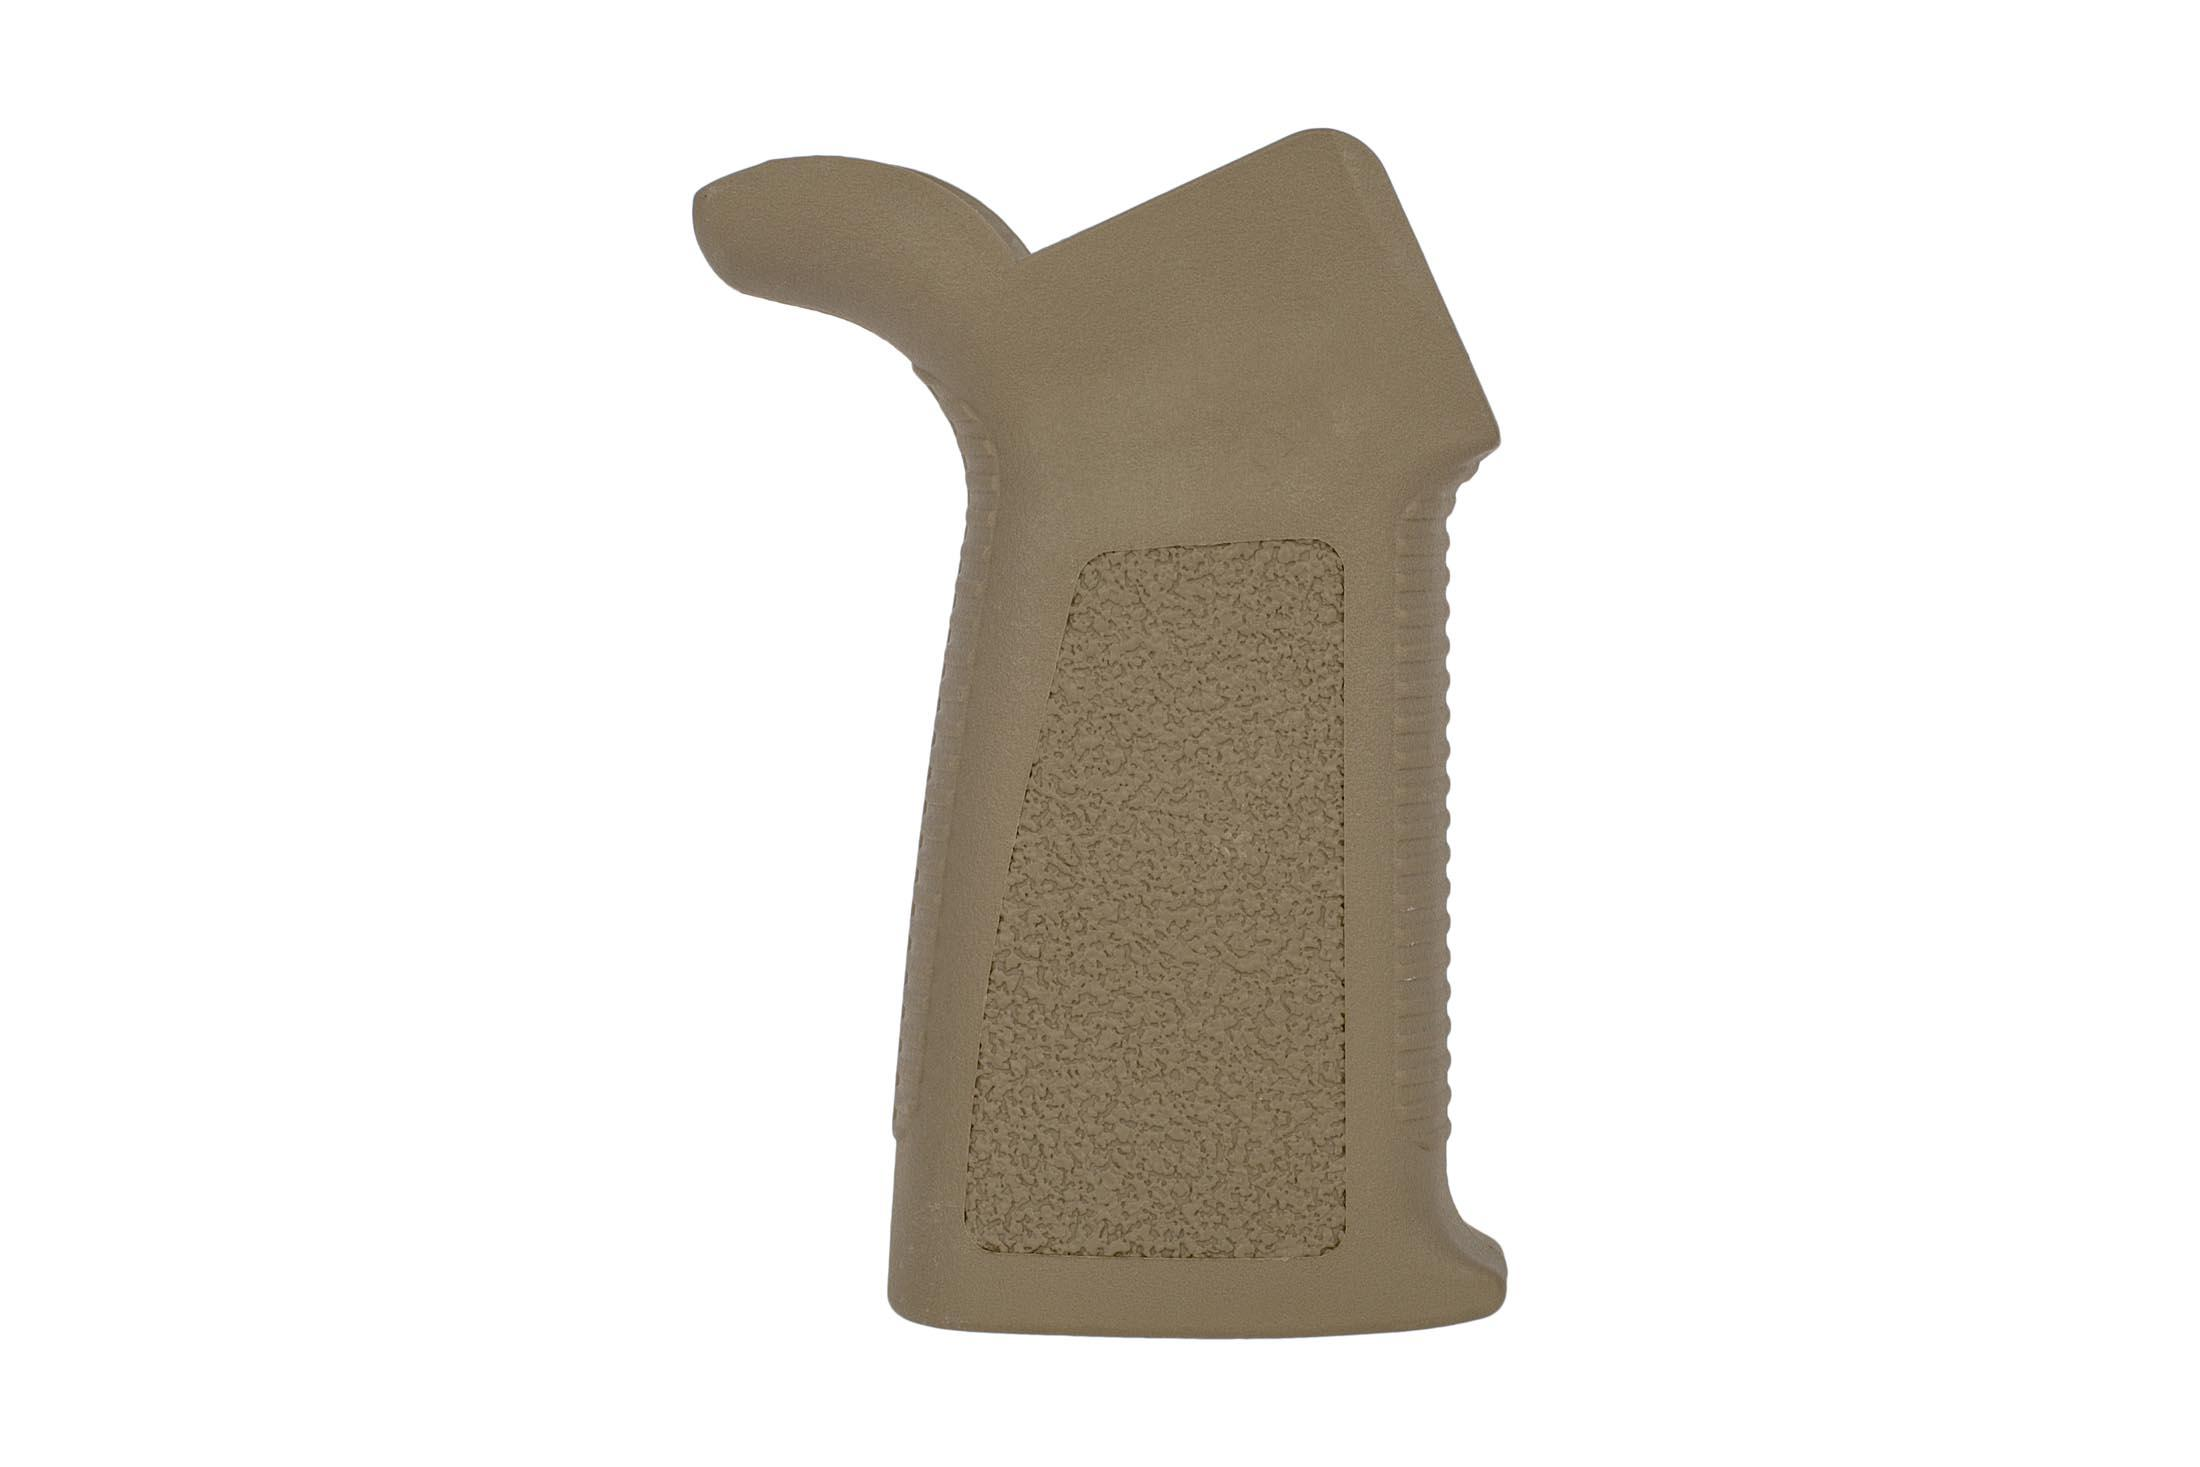 Expo Arms rugged black AR15 pistol grip is ergonomic and incredibly affordable design with ridged texture on front and rear straps